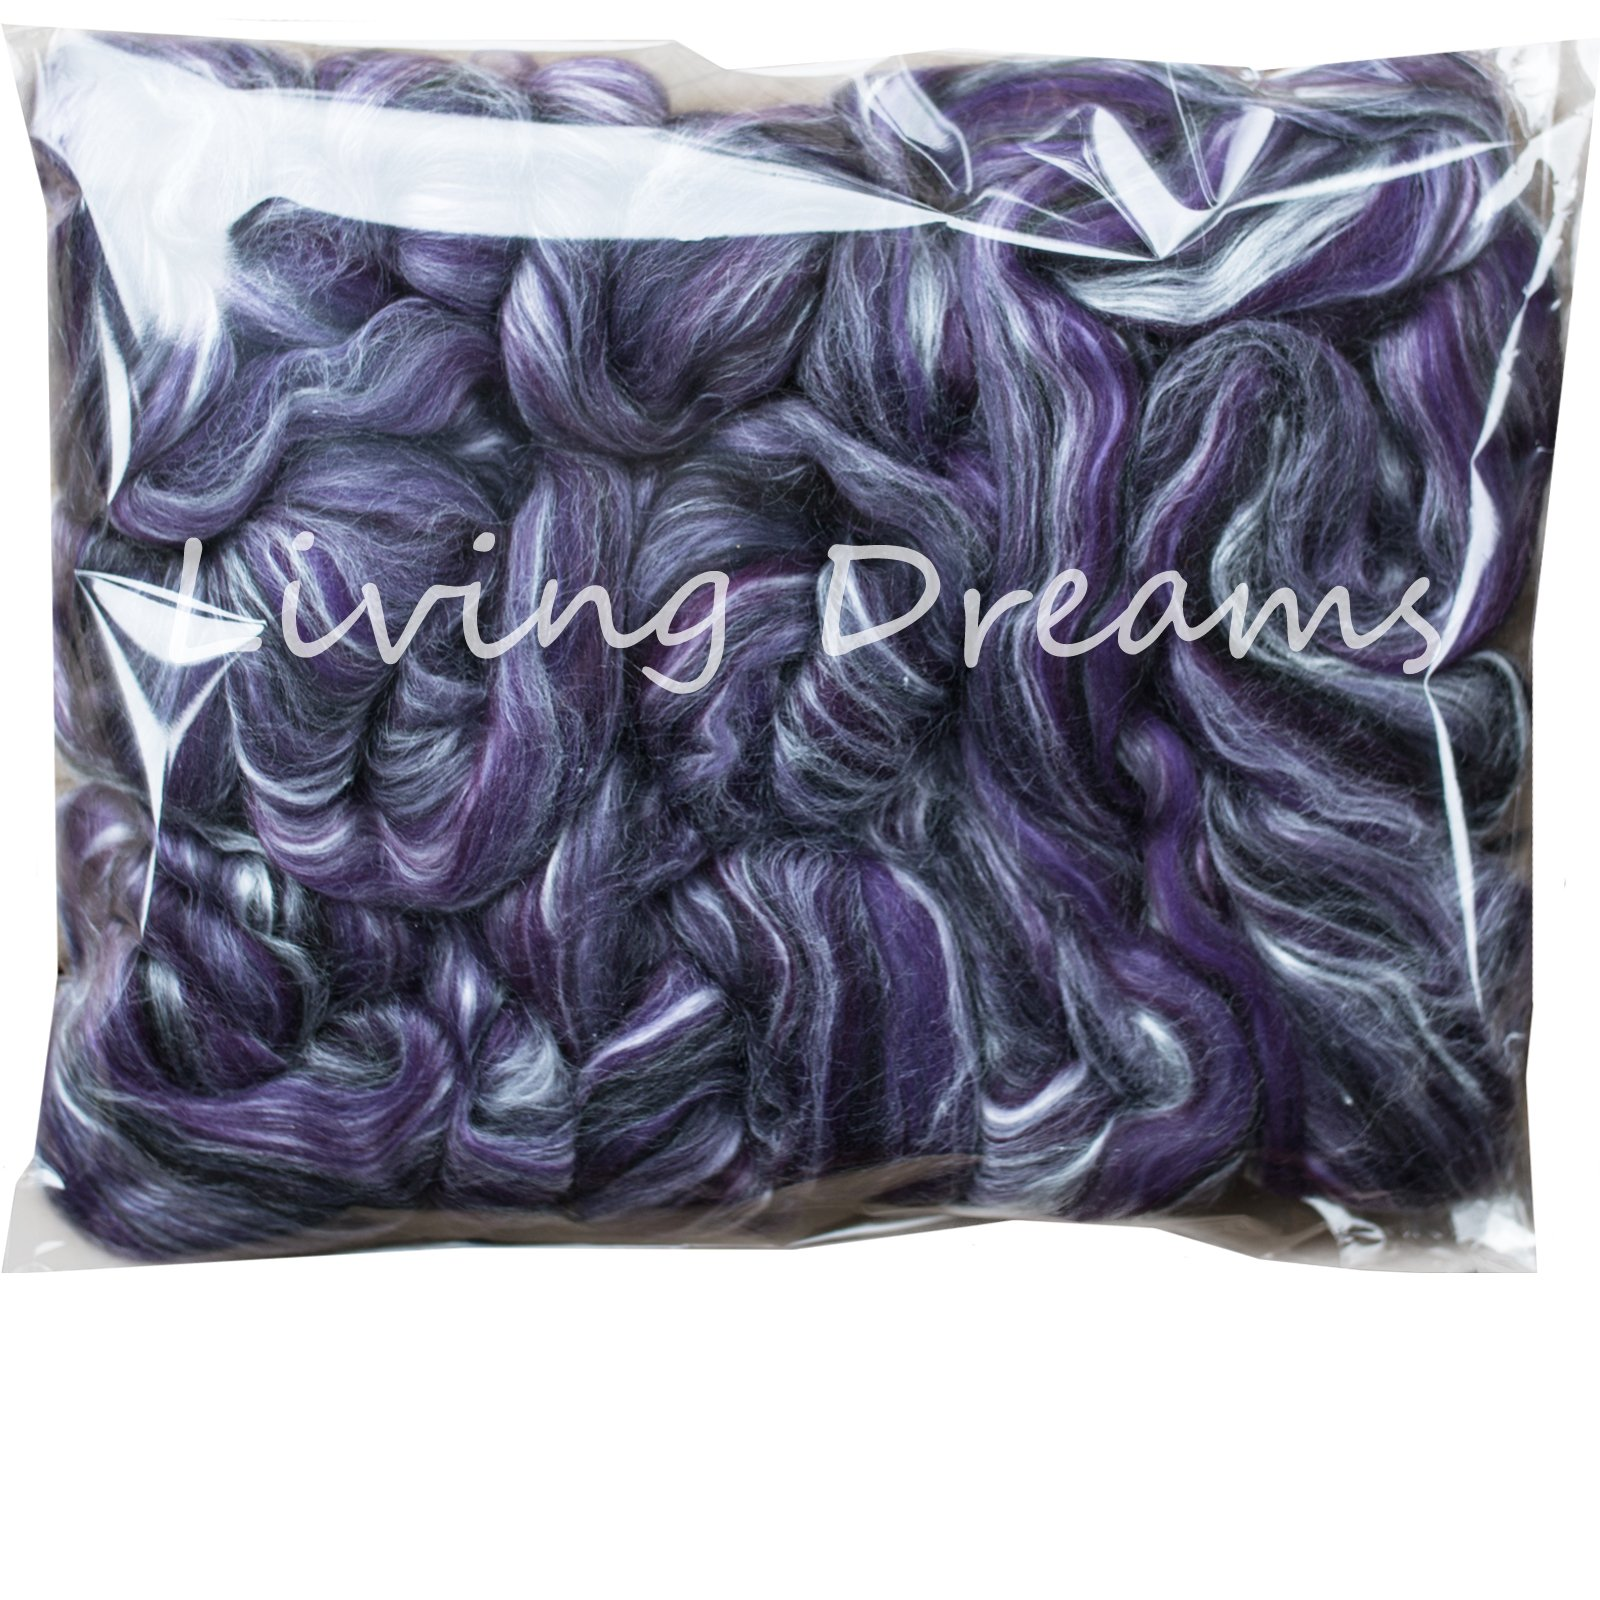 Silk Merino Fiber for Spinning. Super Soft Combed Top Wool Roving for Hand Spinning, Wet Felting, Nuno Felting, Needle Felting, Soap Making, Paper Making and Embellishments. Night Out